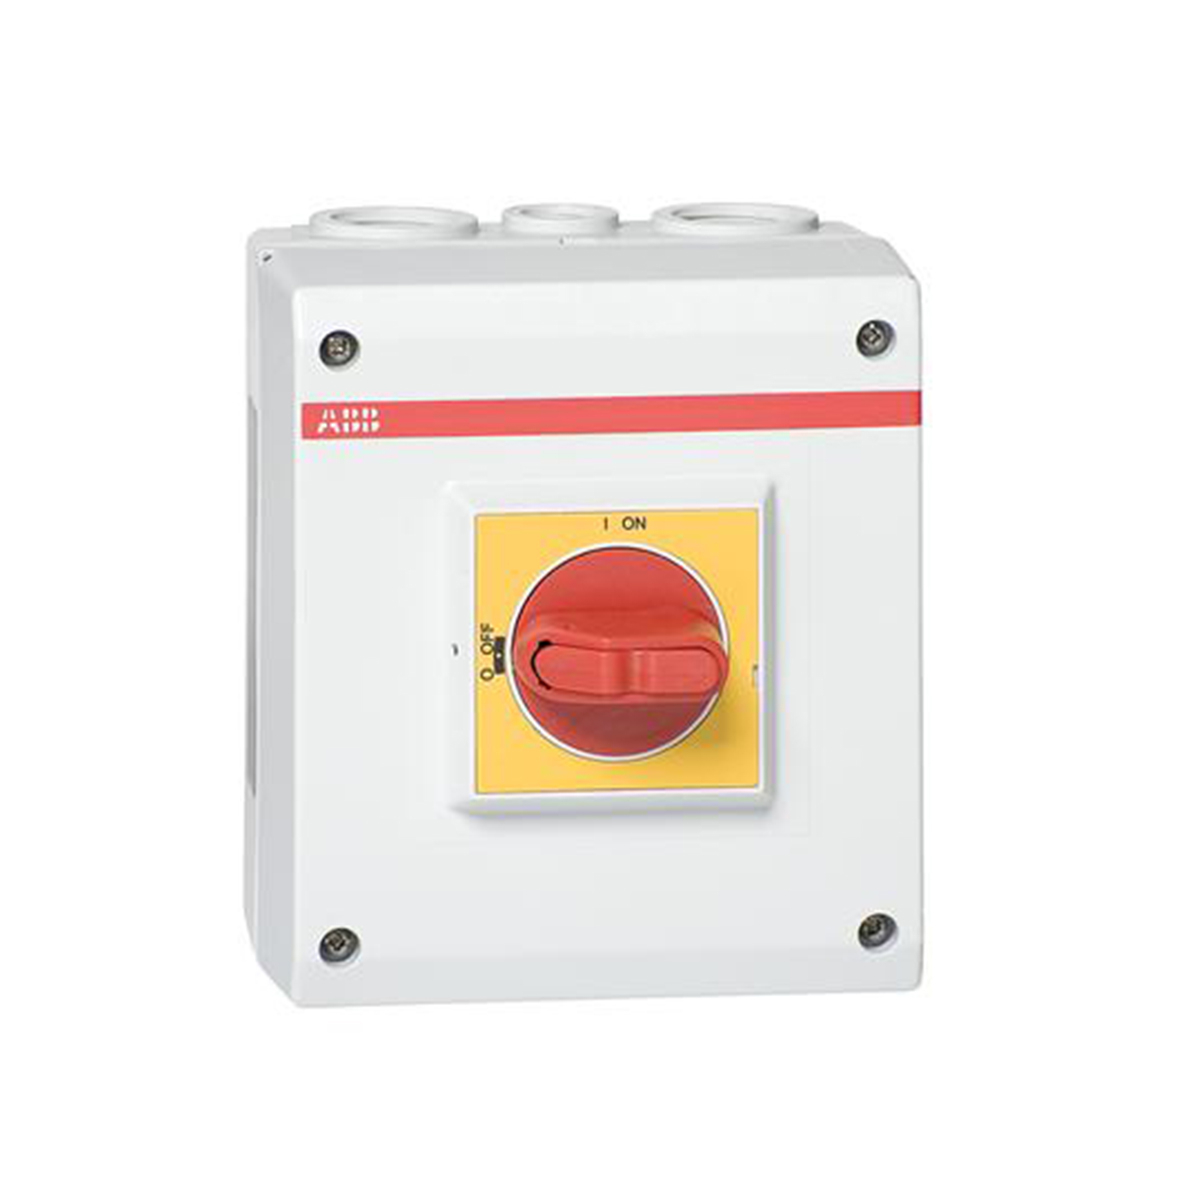 ABB,EOT32U3P4-1P,ABB EOT Non-Fusible Enclosed Disconnect Switch, 600 VAC, 25 hp, 40 A, 1NO Contact Form, 3 Poles